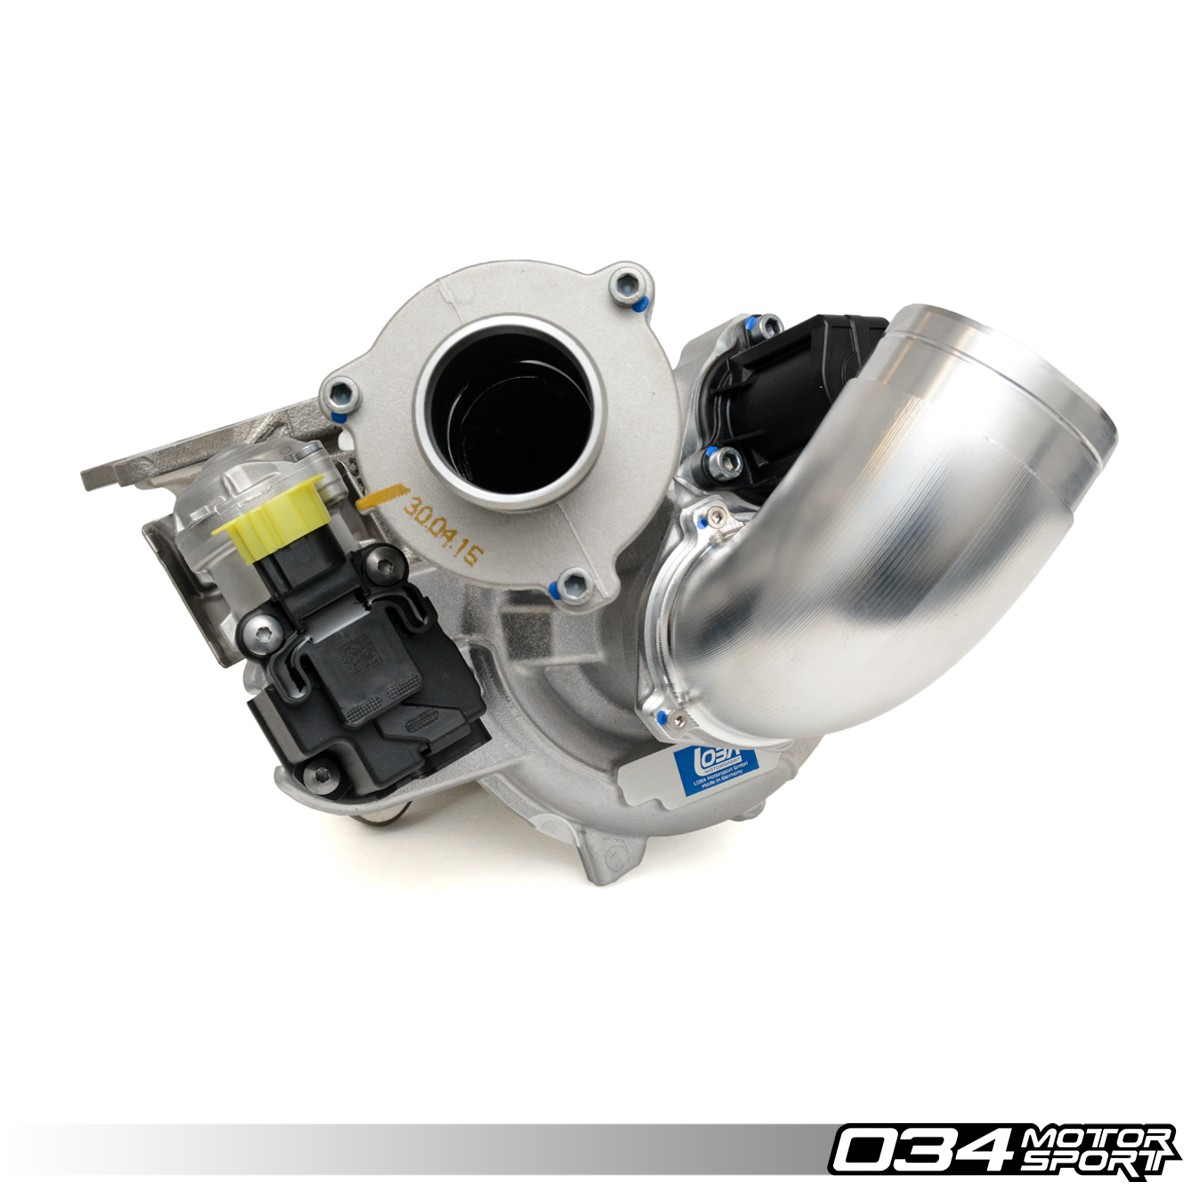 r460 hybrid turbocharger system for 8v audi s3 mkvii. Black Bedroom Furniture Sets. Home Design Ideas